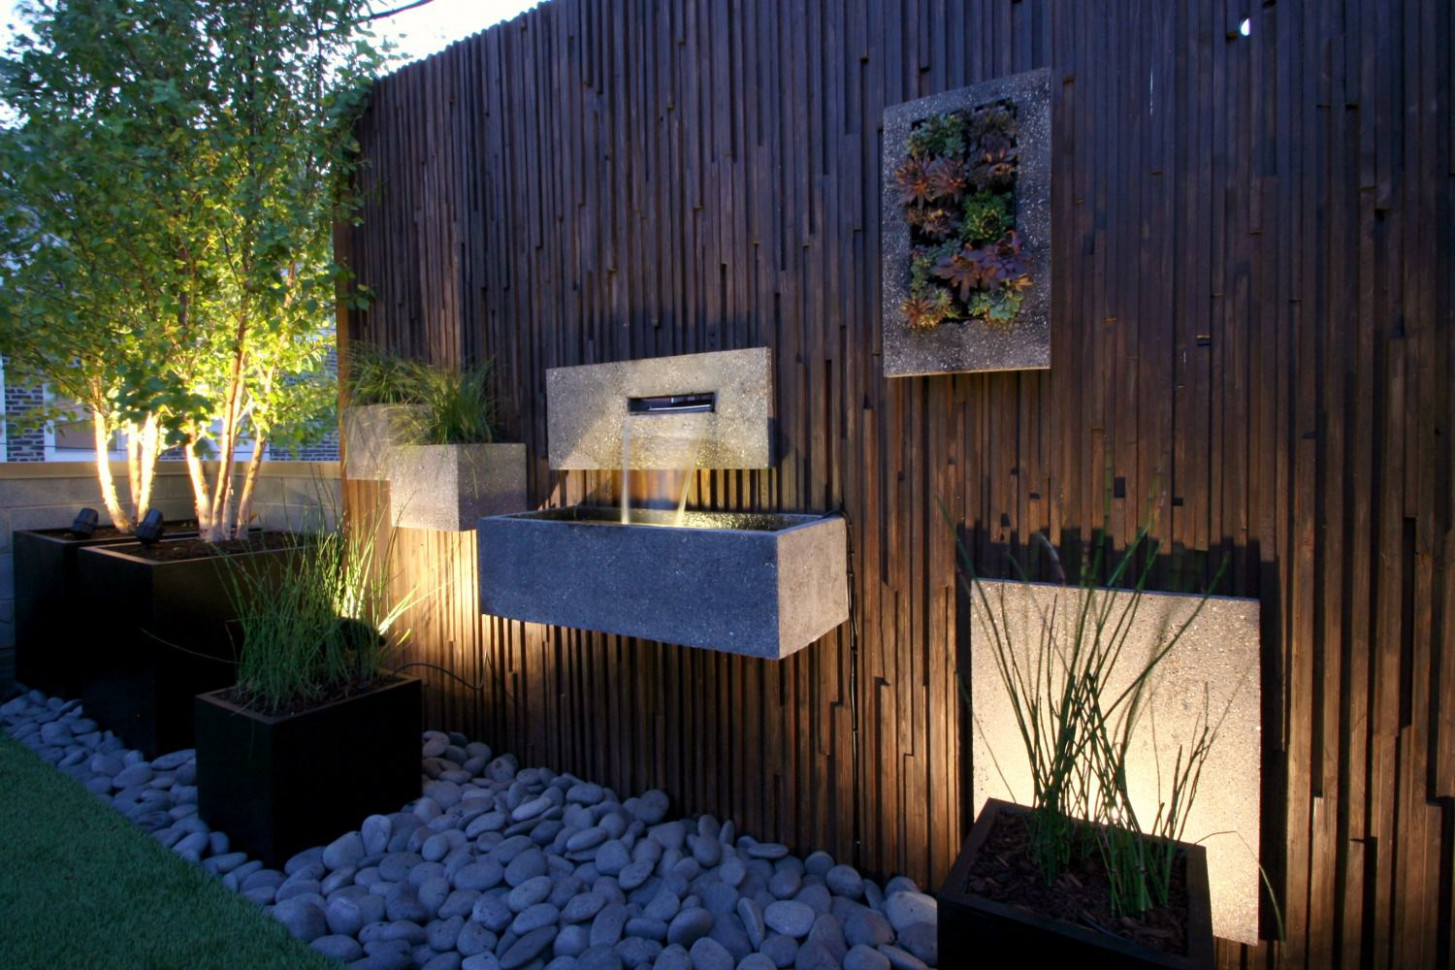 11 Ways To Gain Privacy In Your Yard Carport Privacy Screen Ideas